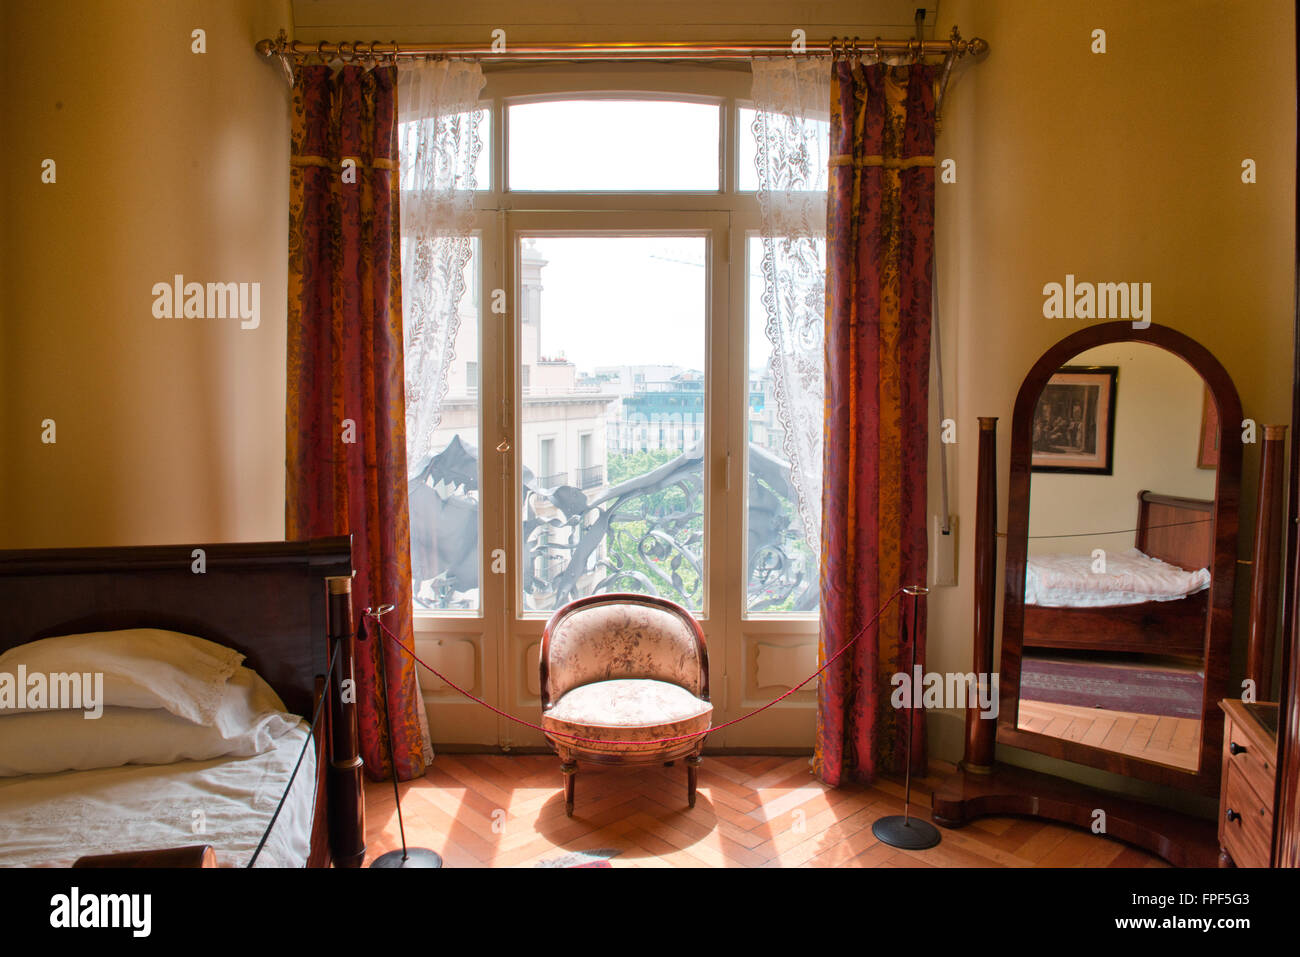 Interior of a restful vintage bedroom with comfortable bed, round chair, mirror and curtains at a window with city - Stock Image